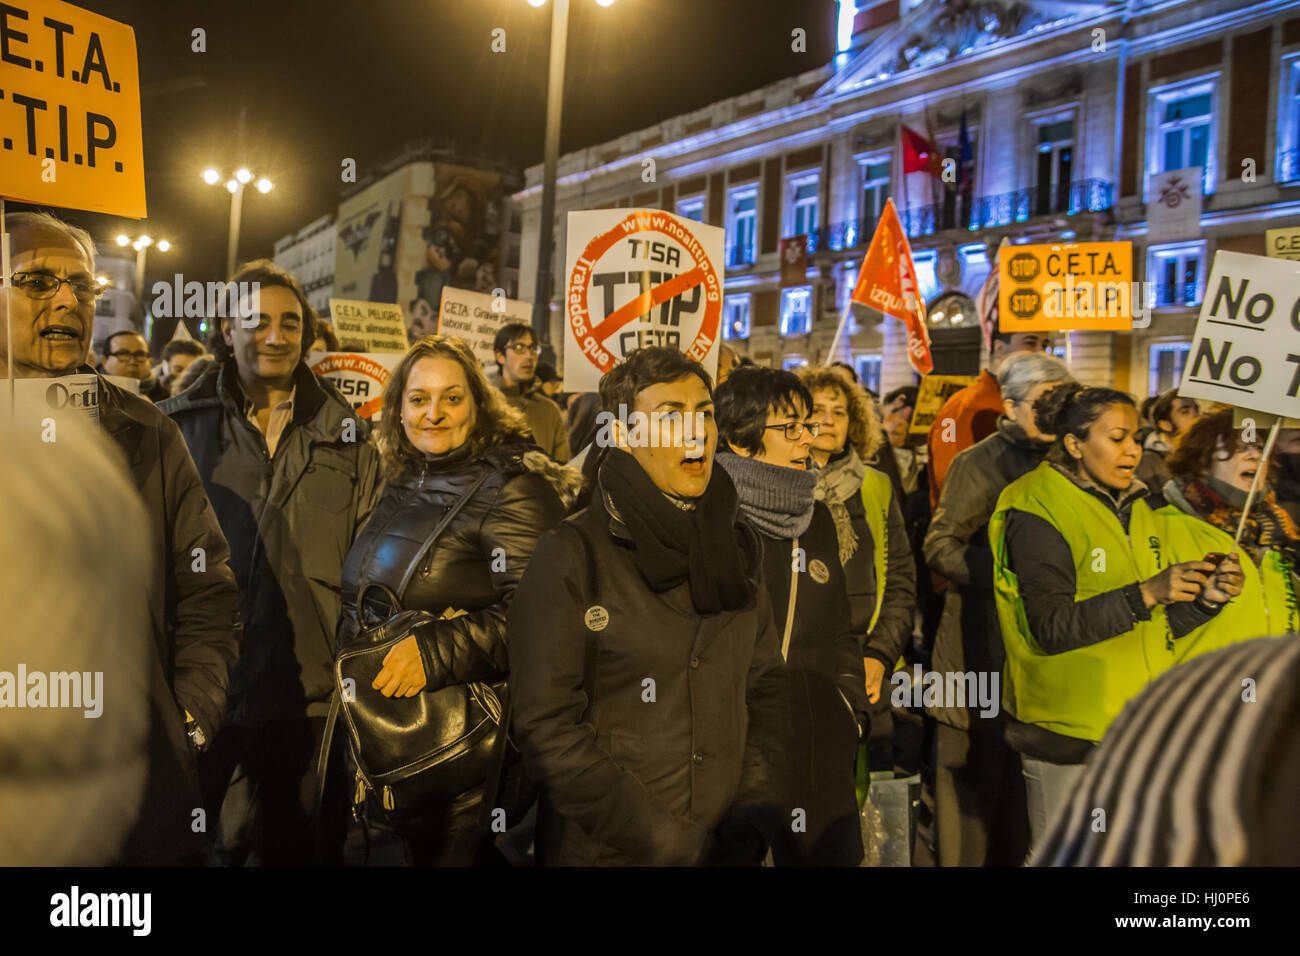 Madrid, Spain. 21st Jan, 2017. Demonstration of dignity march  in puerta del sol, The dignities march are social - Stock Image